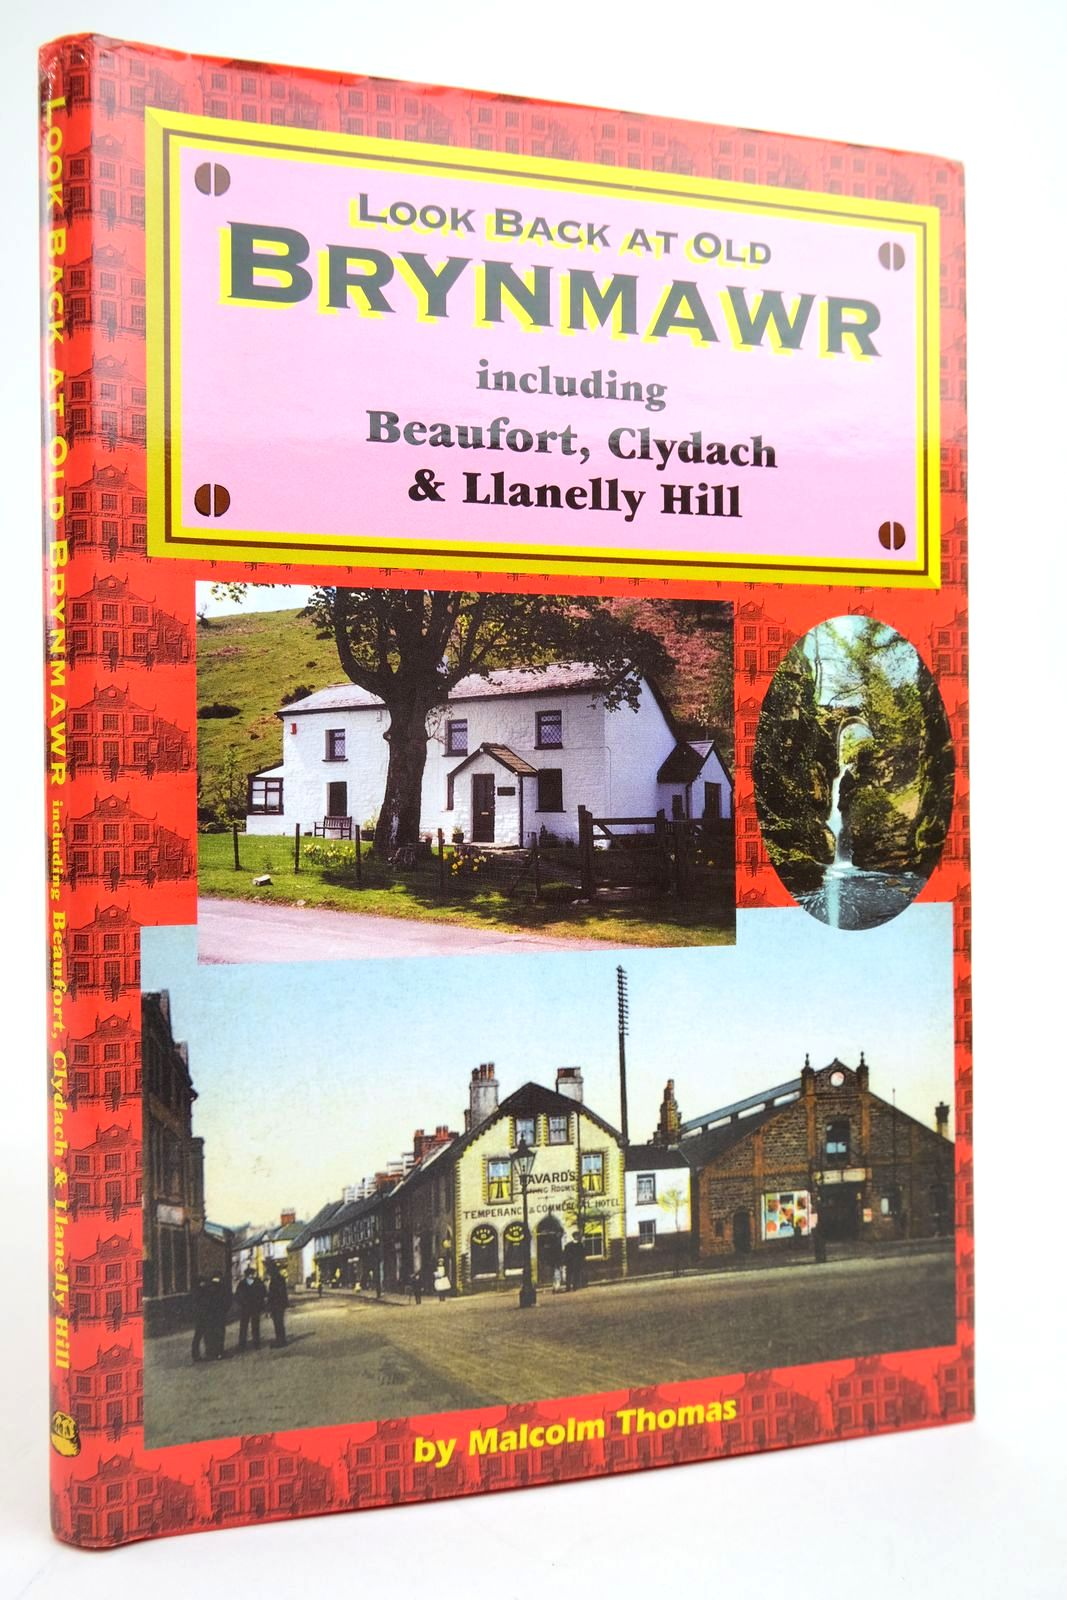 Photo of LOOK BACK AT OLD BRYNMAWR INCLUDING BEAUFORT, CLYDACH & LLANELLY HILL- Stock Number: 2135079